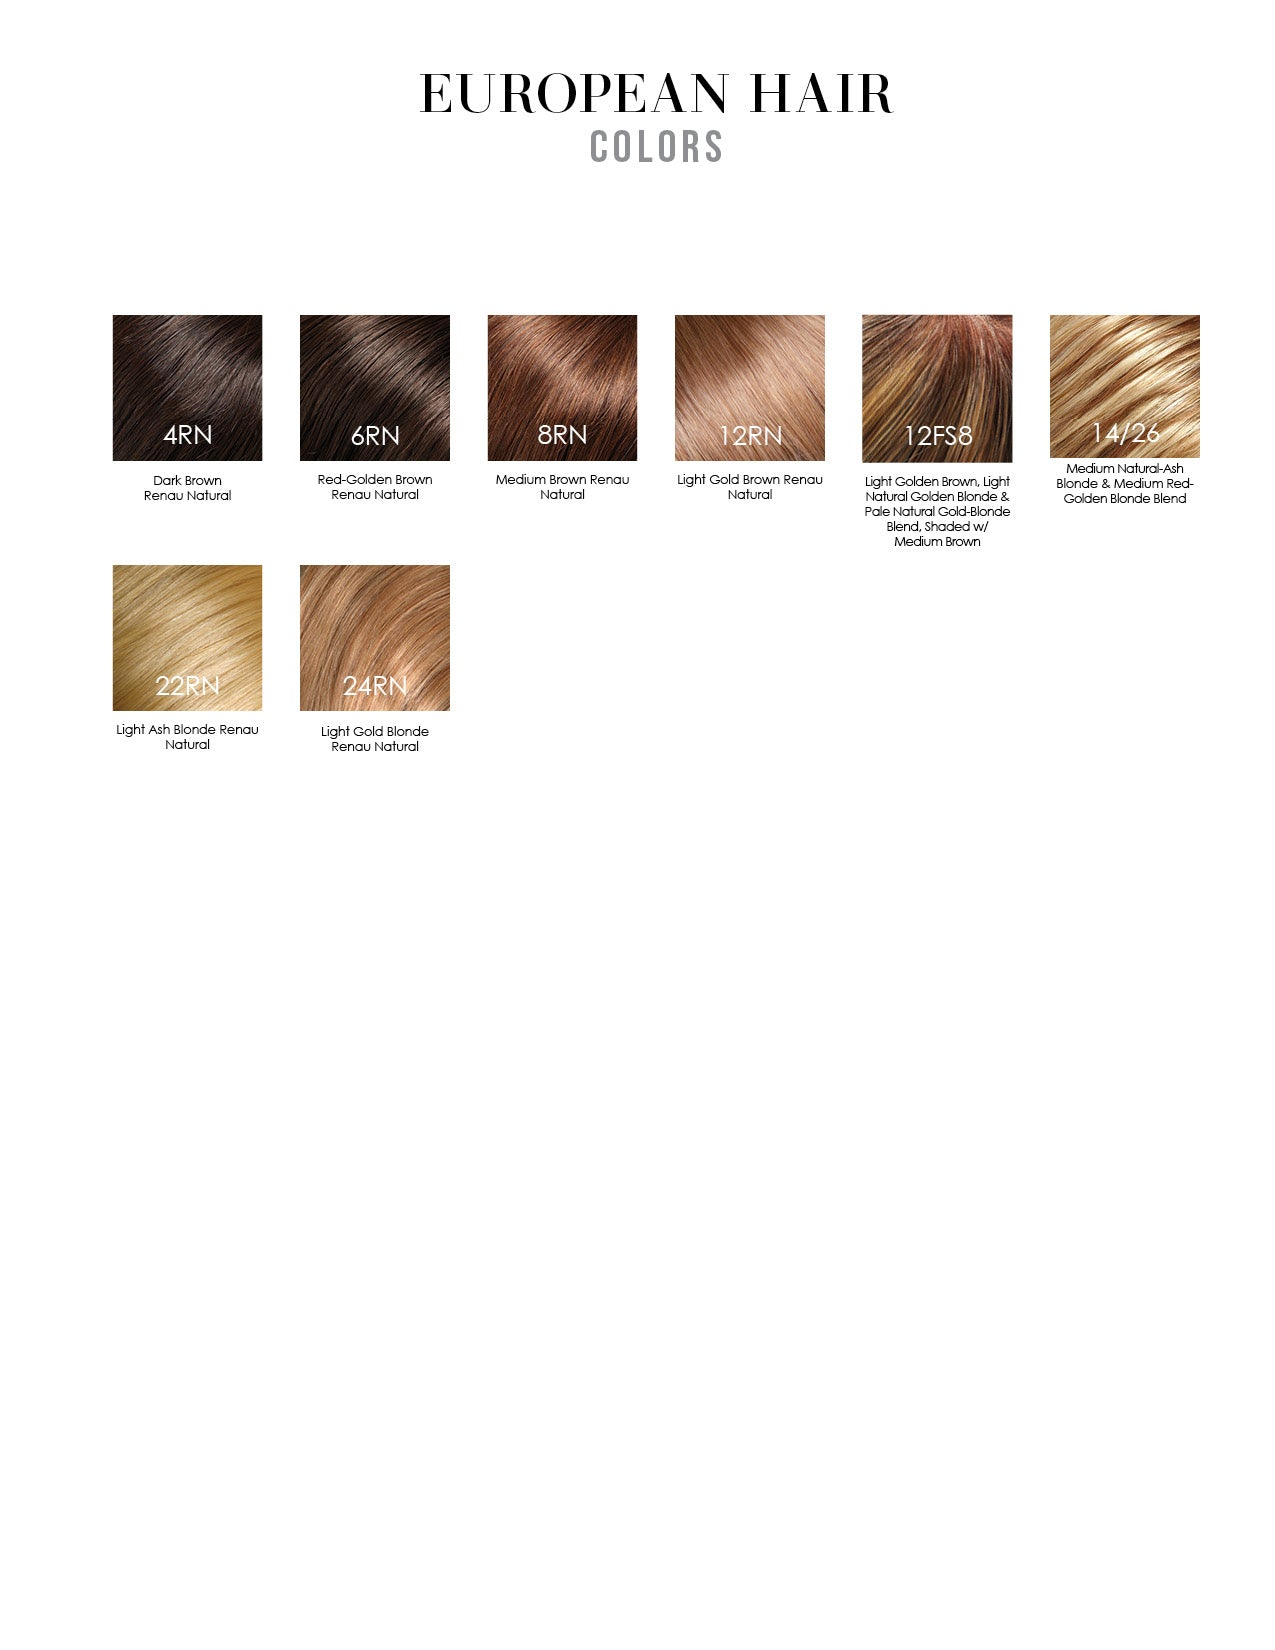 Jon Renau European Human Hair Wig Colors